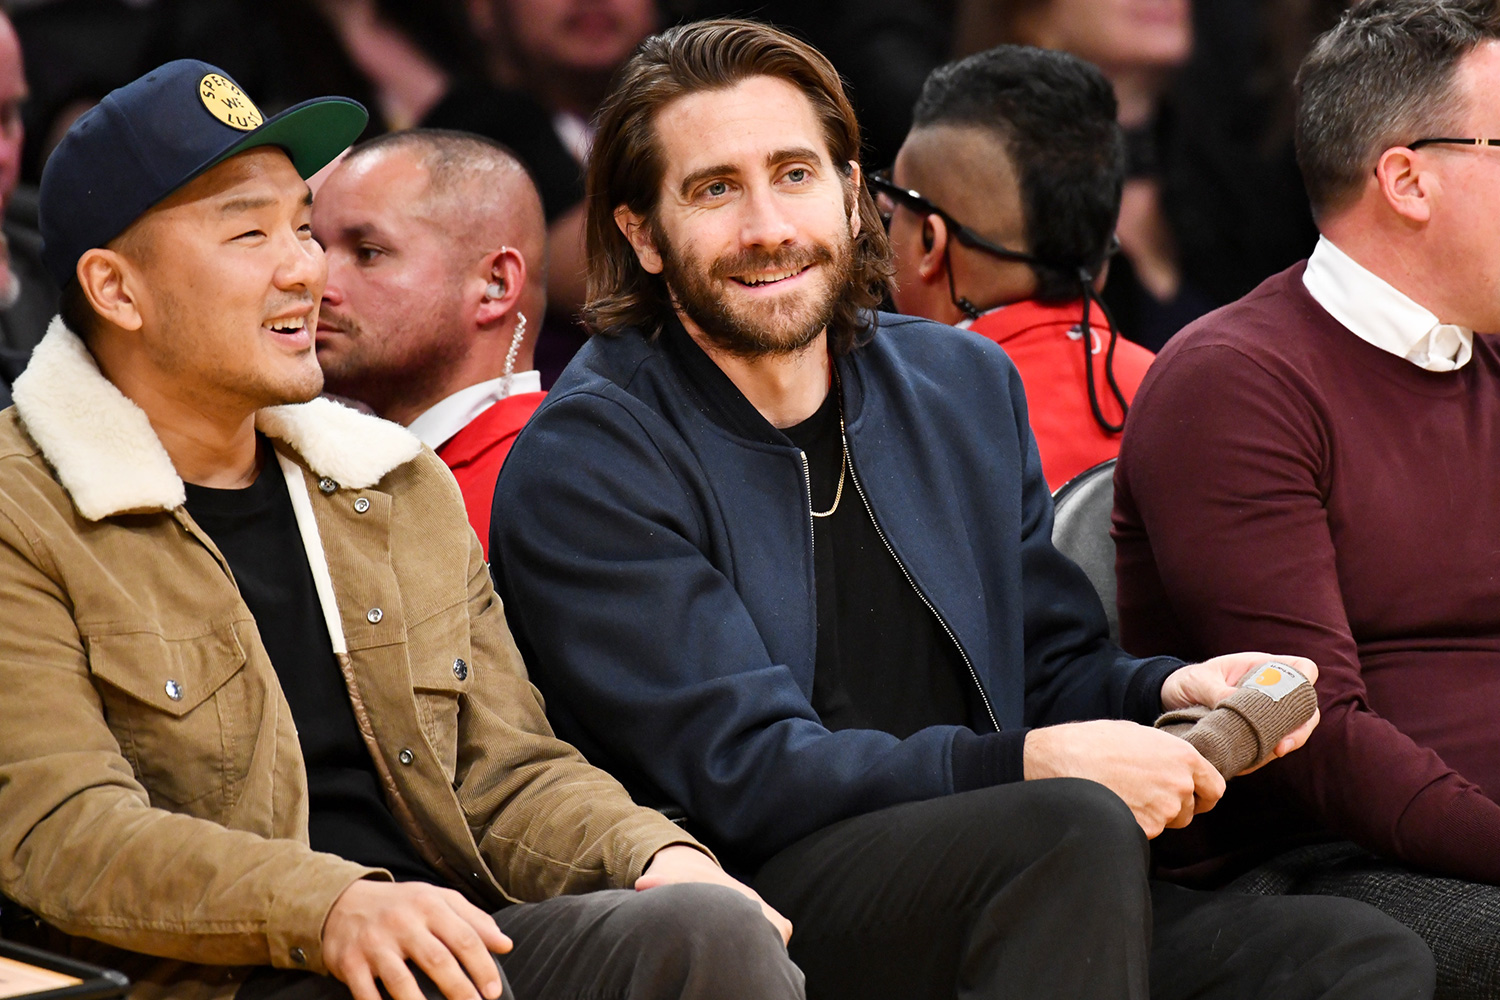 Jake Gyllenhaal attends a basketball game between the Los Angeles Lakers and the San Antonio Spurs at Staples Center on February 04, 2020 in Los Angeles, California